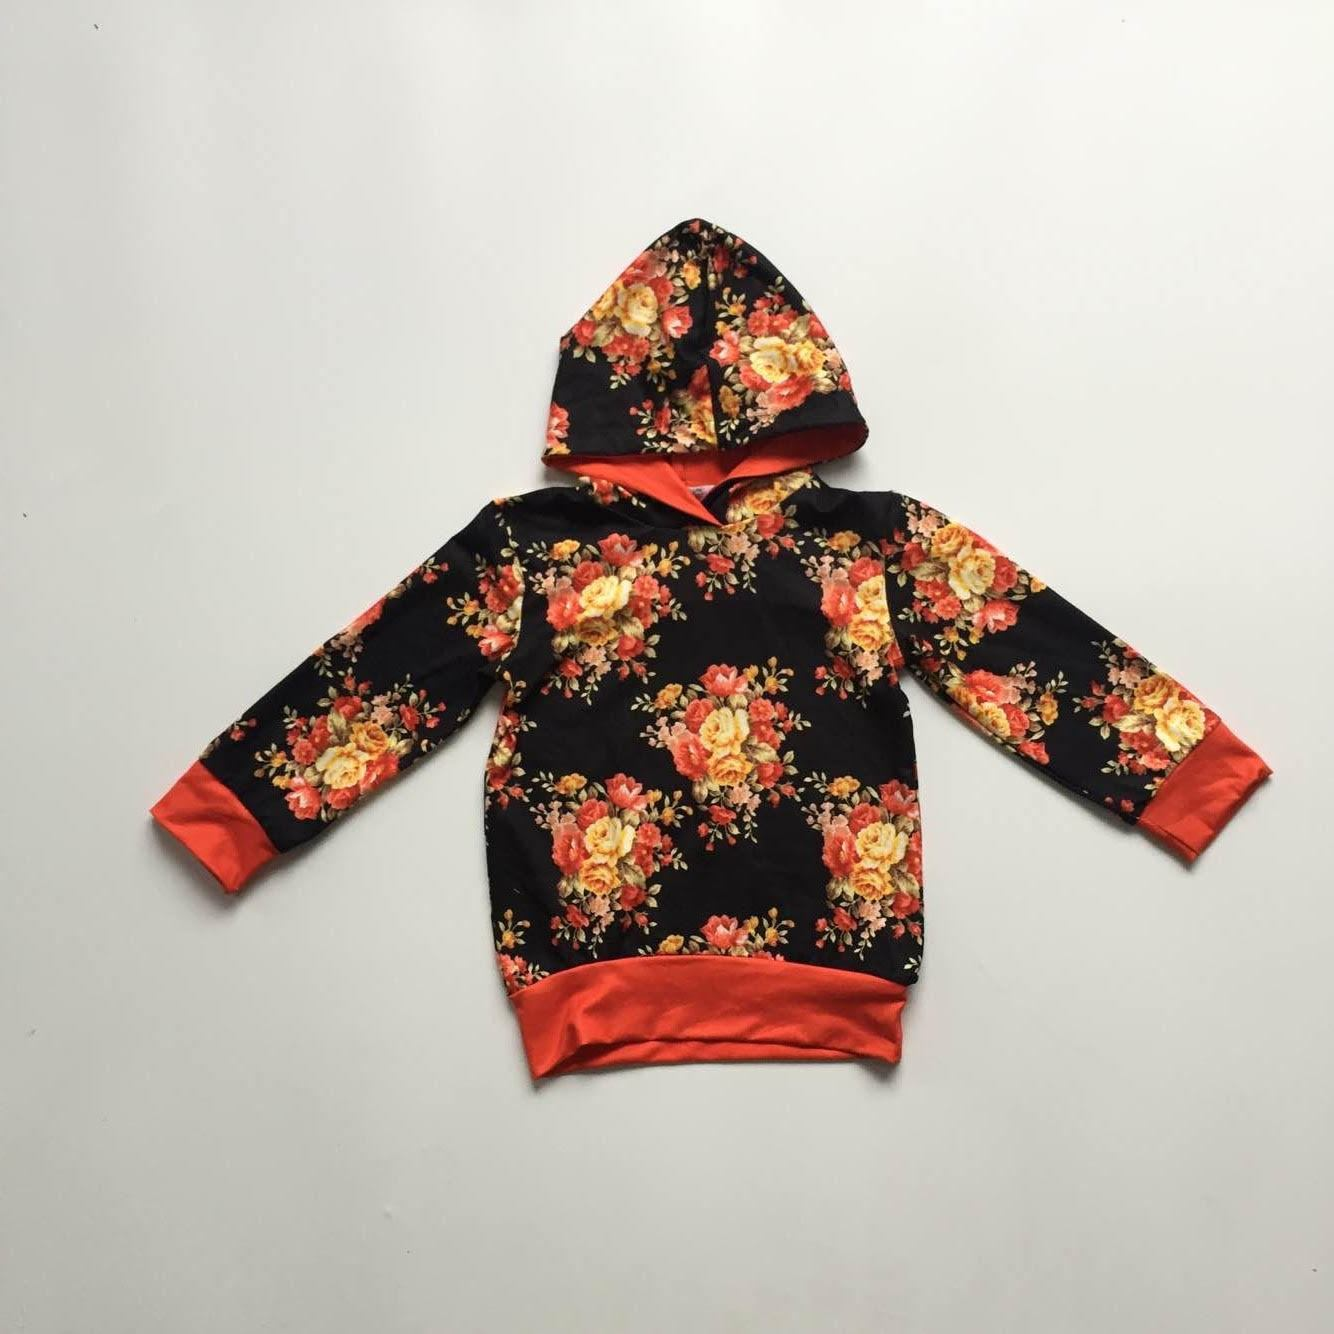 Fall Floral Hooded Top (Child)